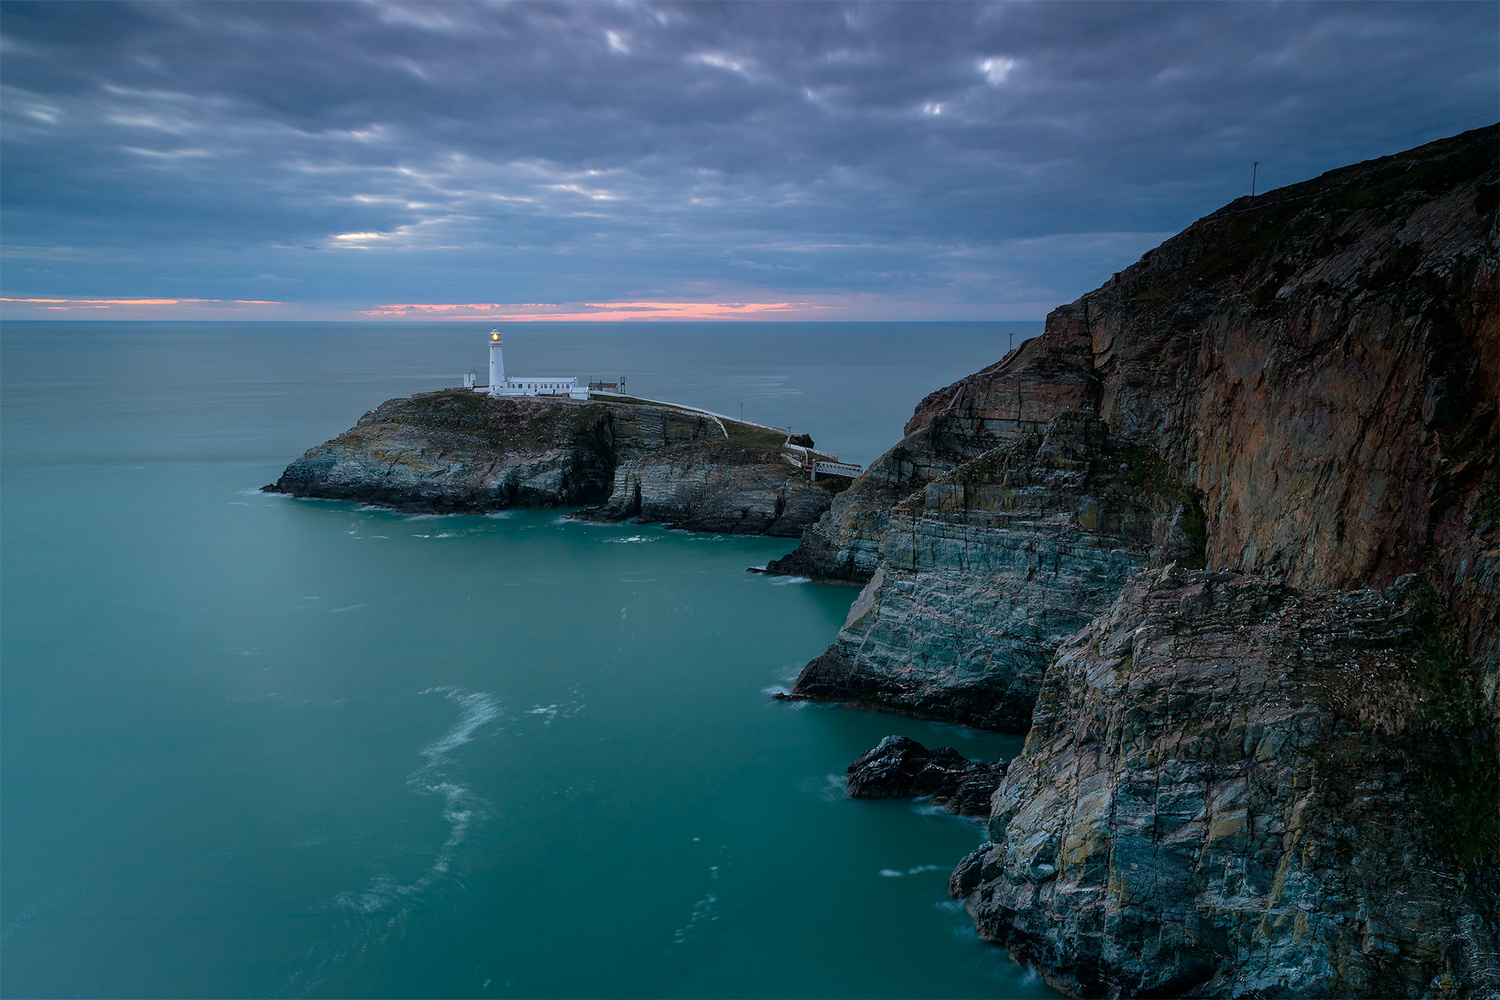 South Stack Lighthouse, Wales by Imran Mirza